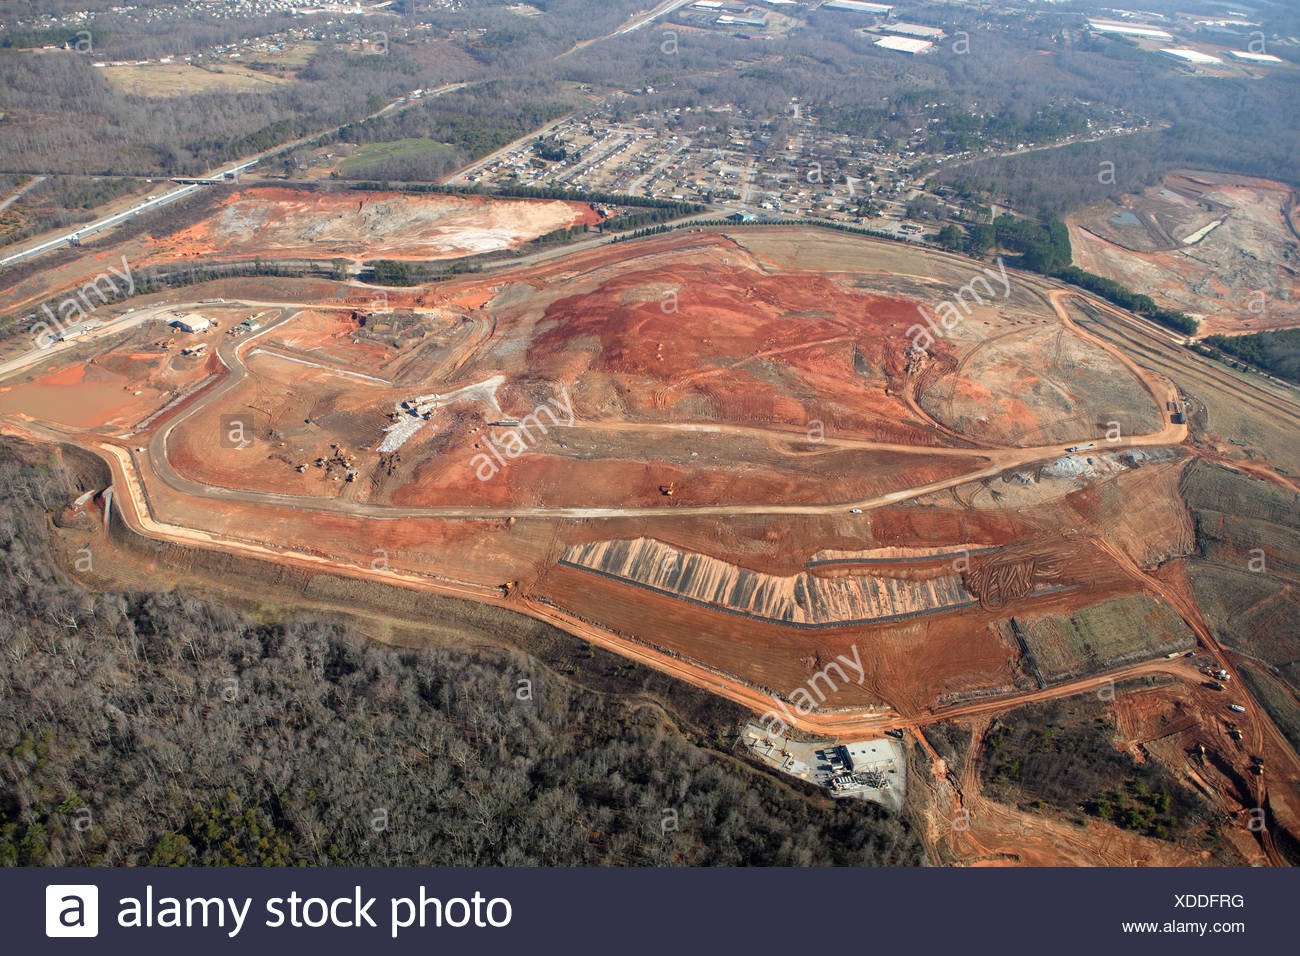 Aerial view of a solid waste landfill in Greenville, SC. - Stock Image